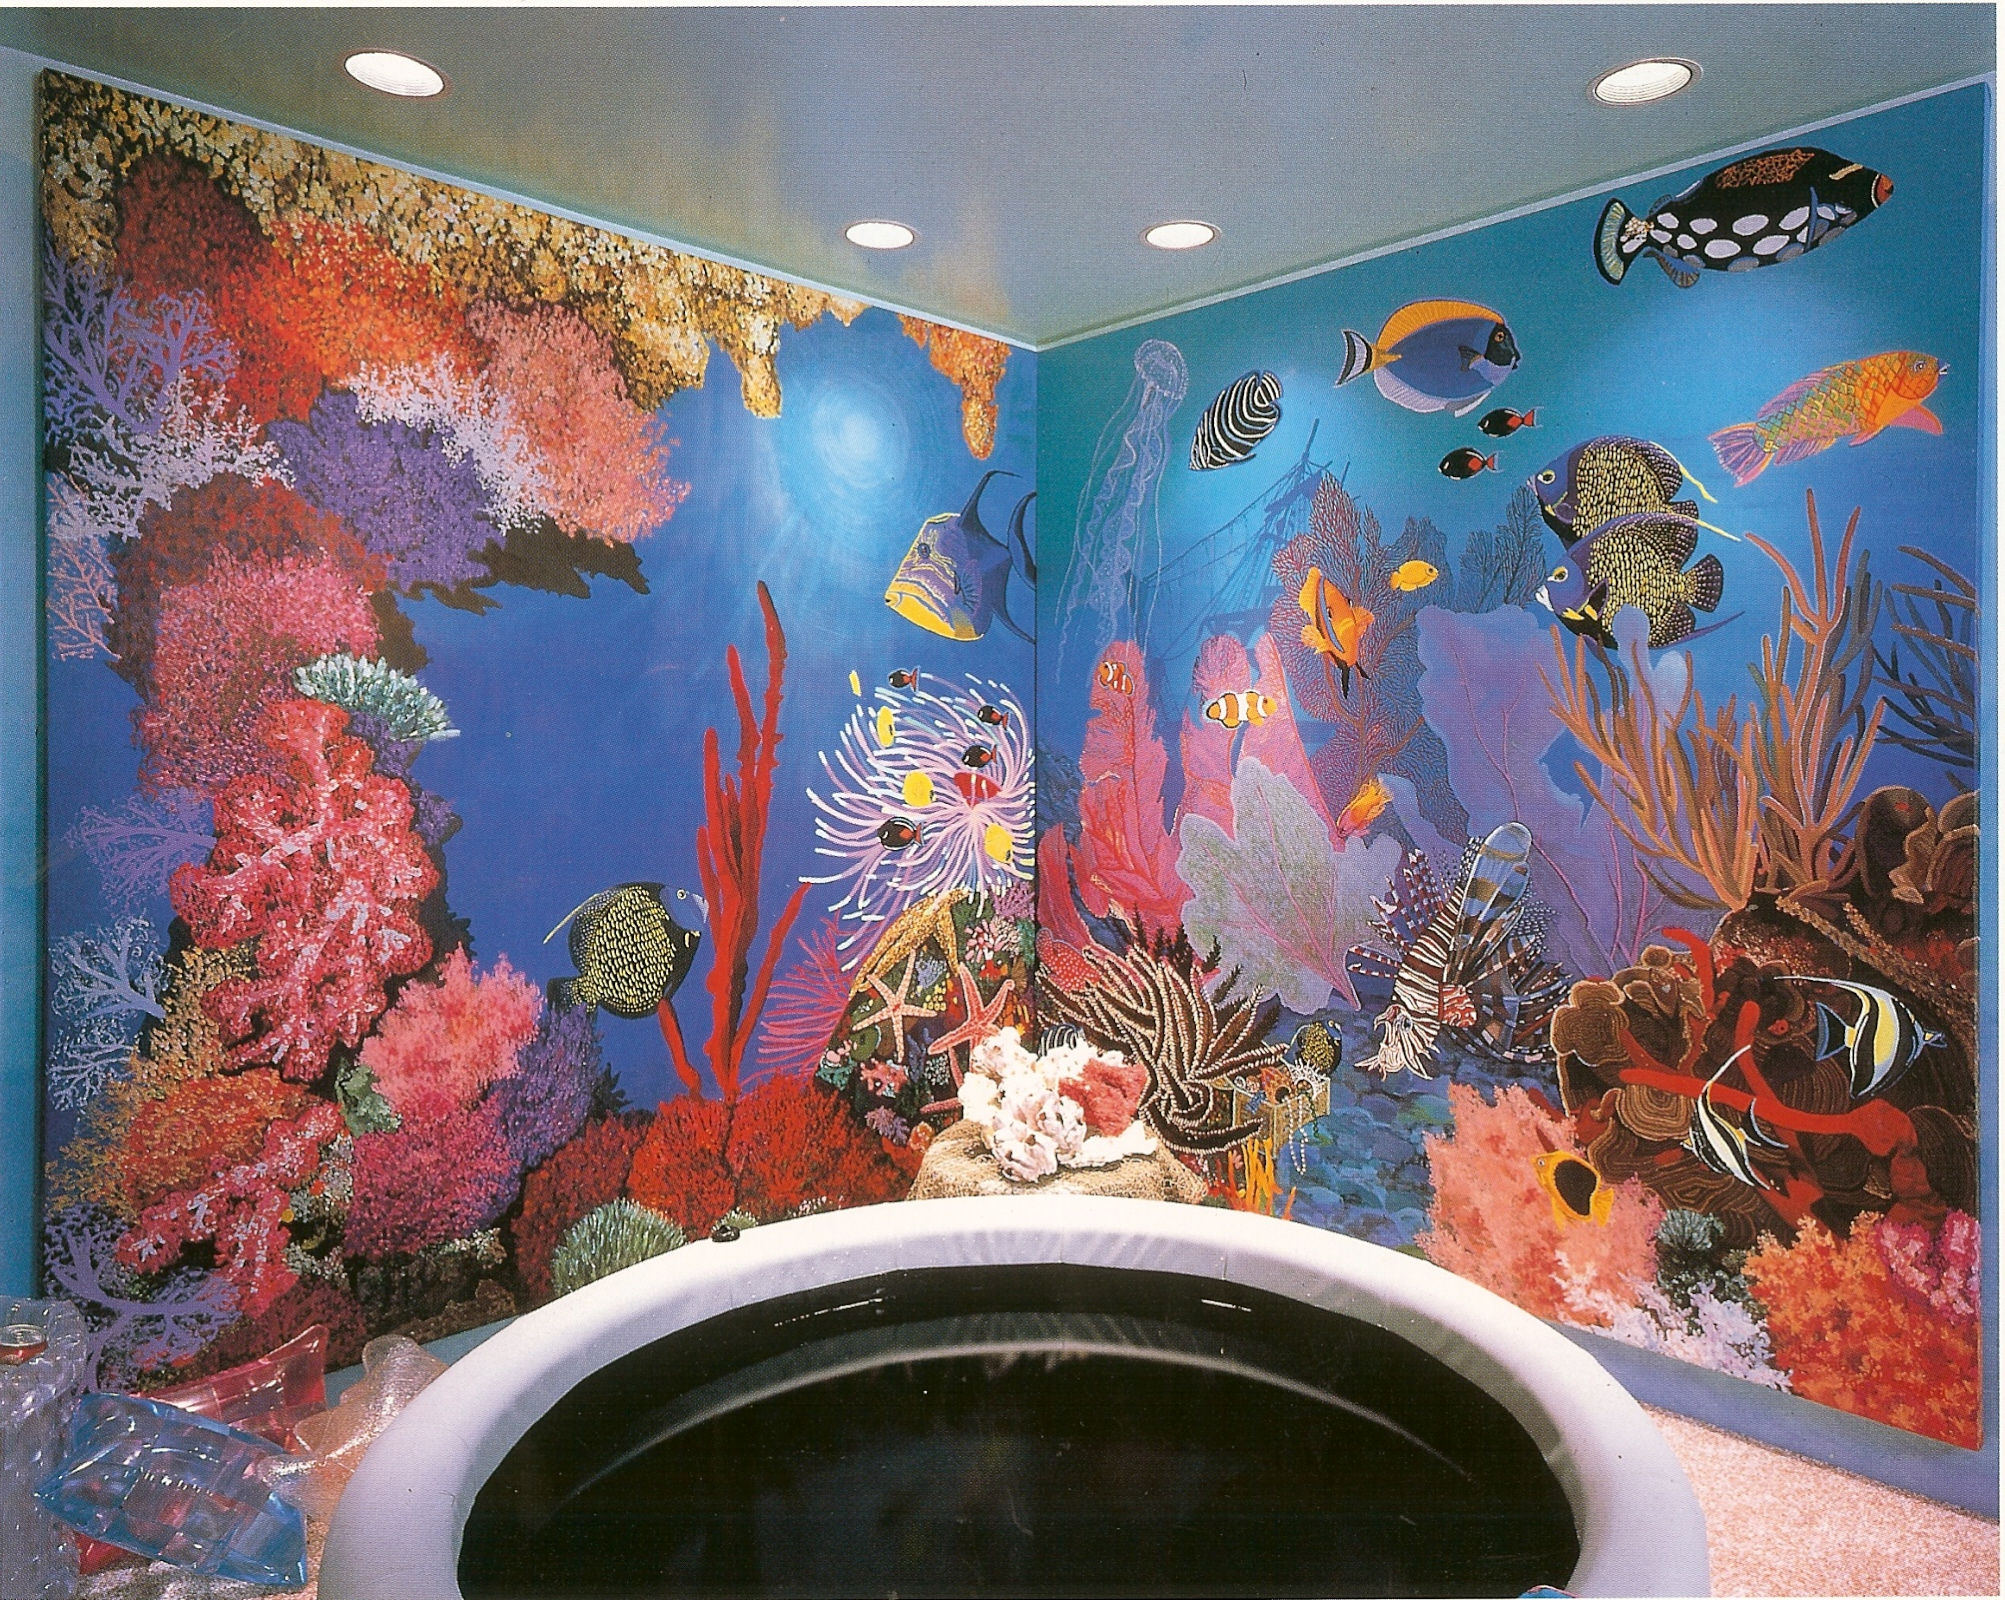 Underwater-life-mural-for-hot-tub-room.-Designer-showcase-Sands-Point-NY-Copy Frais De Aquarium Rond